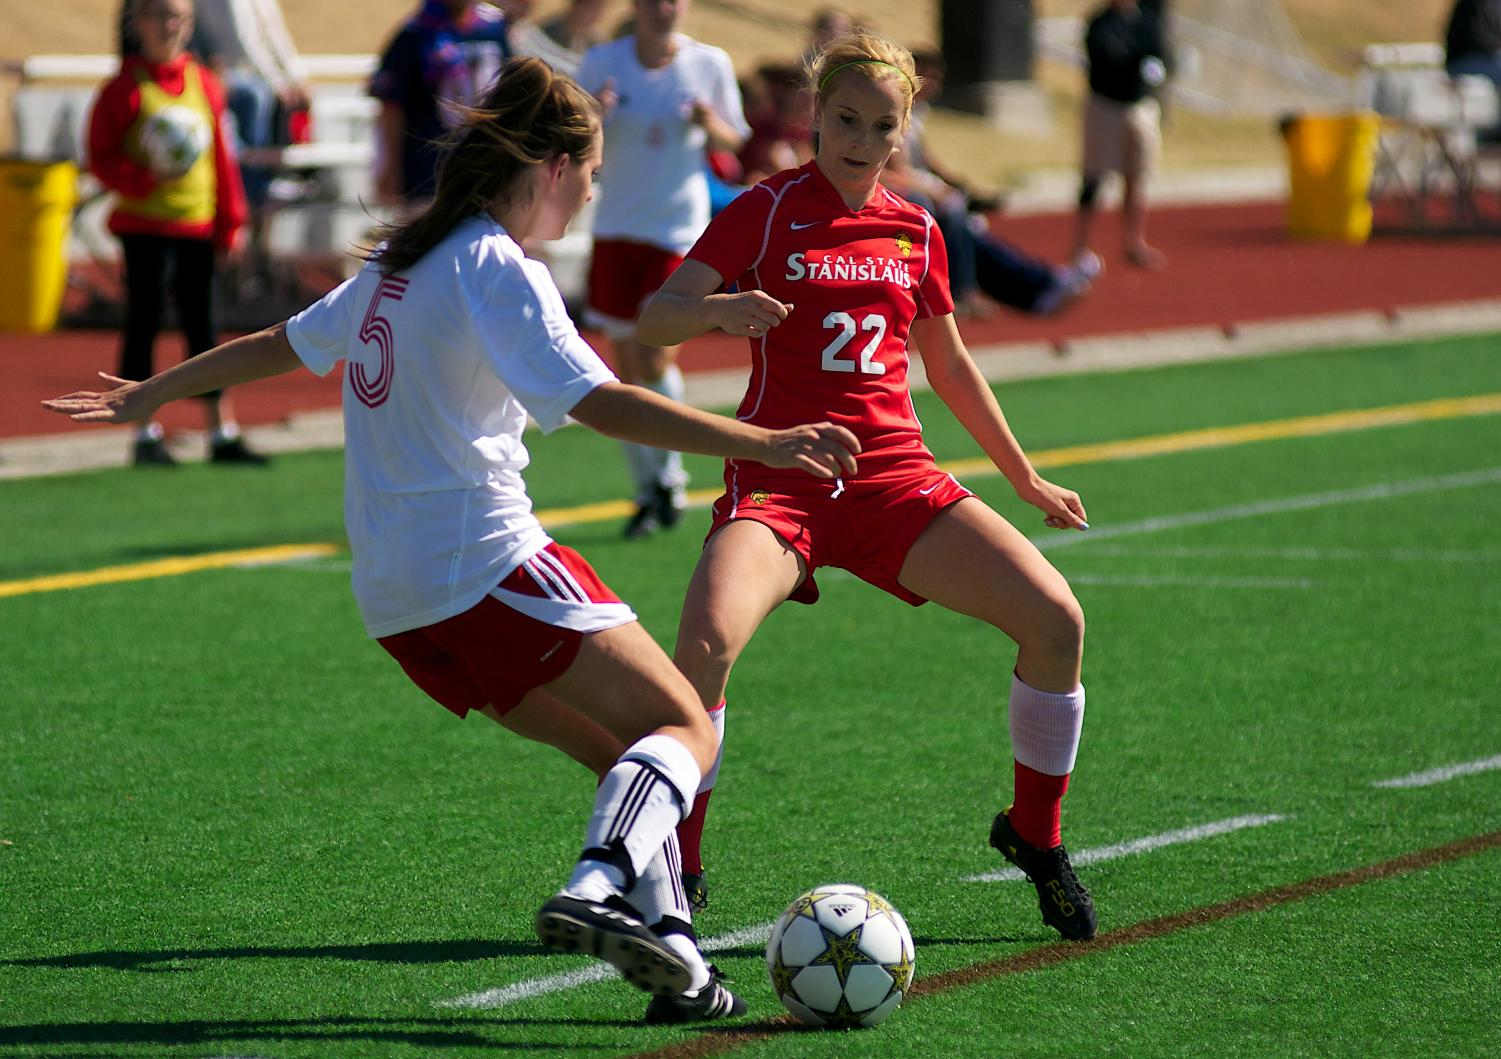 Soccer has had a big increase in interest in the last couple of years in the United States.